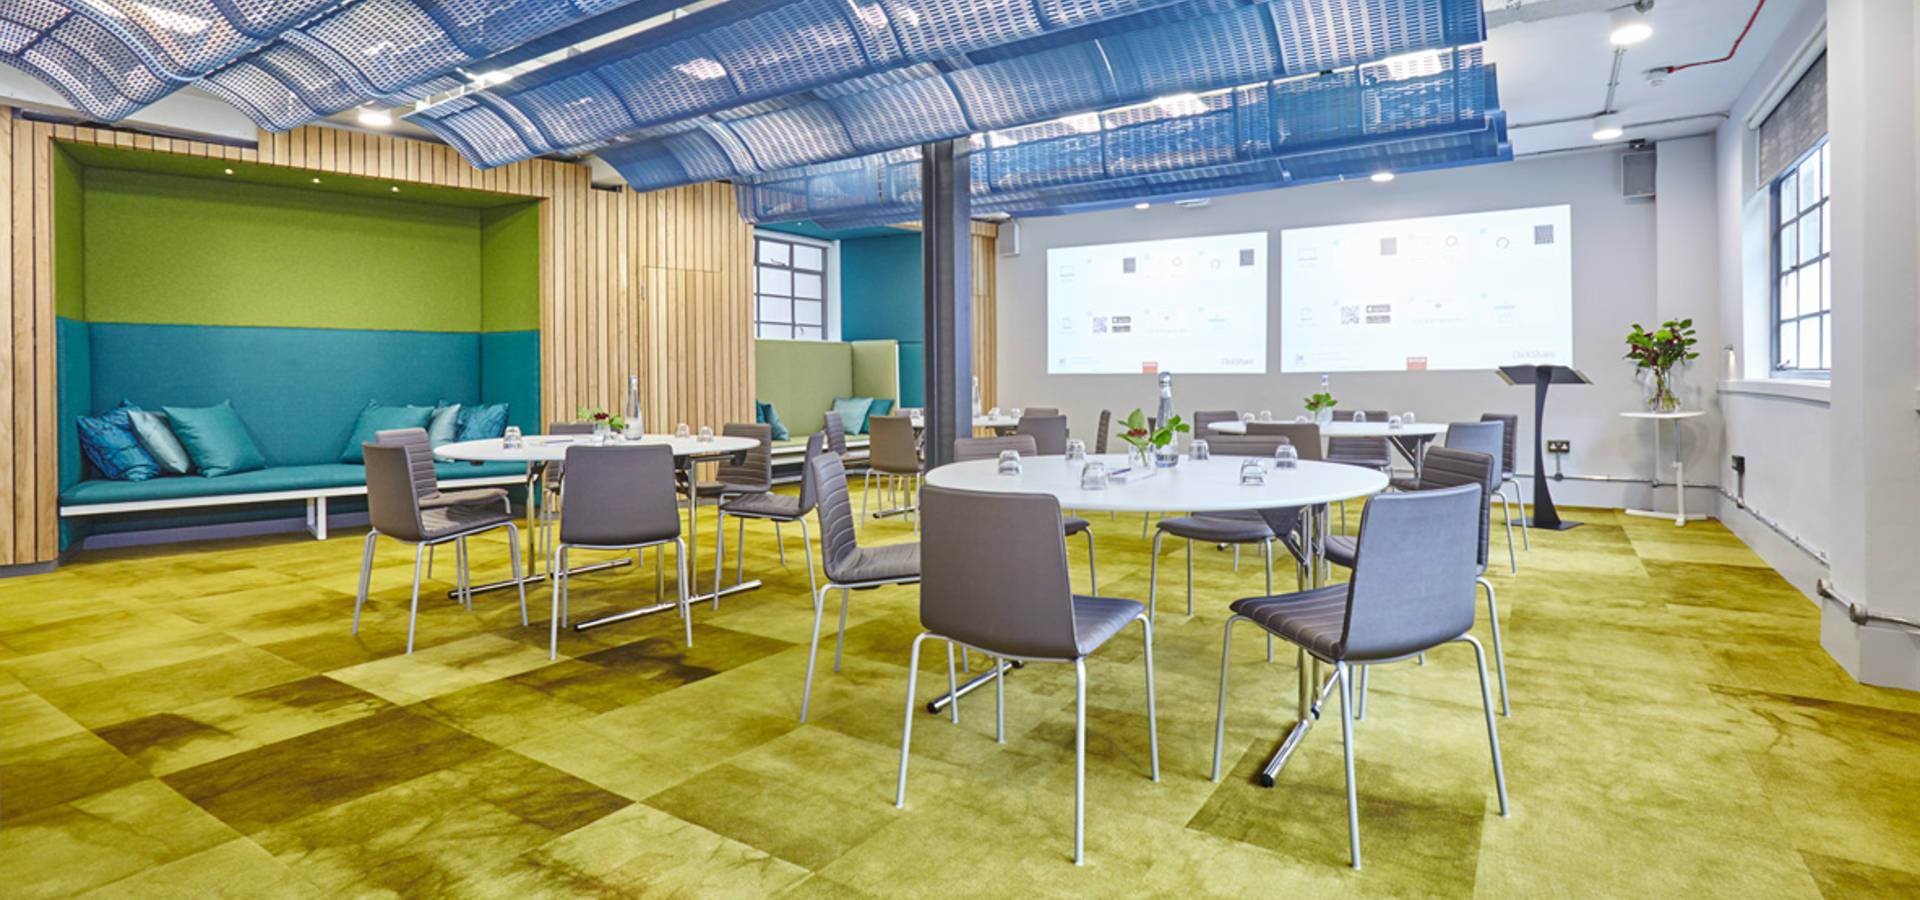 st pancras meeting rooms, meeting rooms st pancras, event space kings cross, event space St Pancras, board meeting kings cross, st pancras board meeting, conferences kings cross, conferences st pancras, meeting venue st pancras, meeting venue kings cross